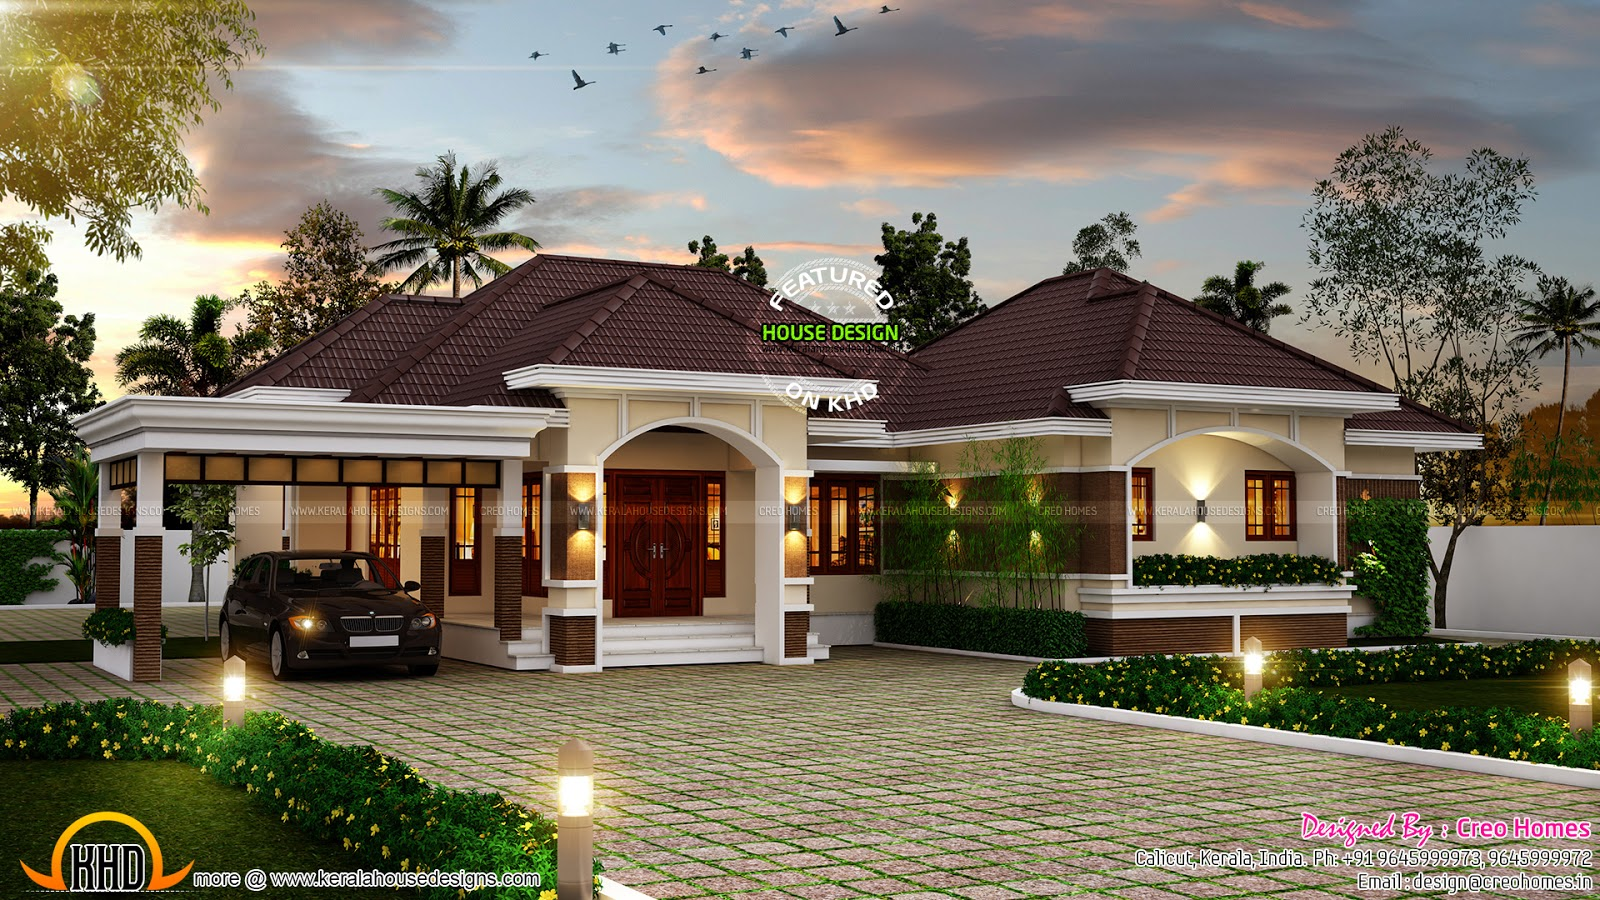 Outstanding bungalow in kerala kerala home design and for Model house bungalow type